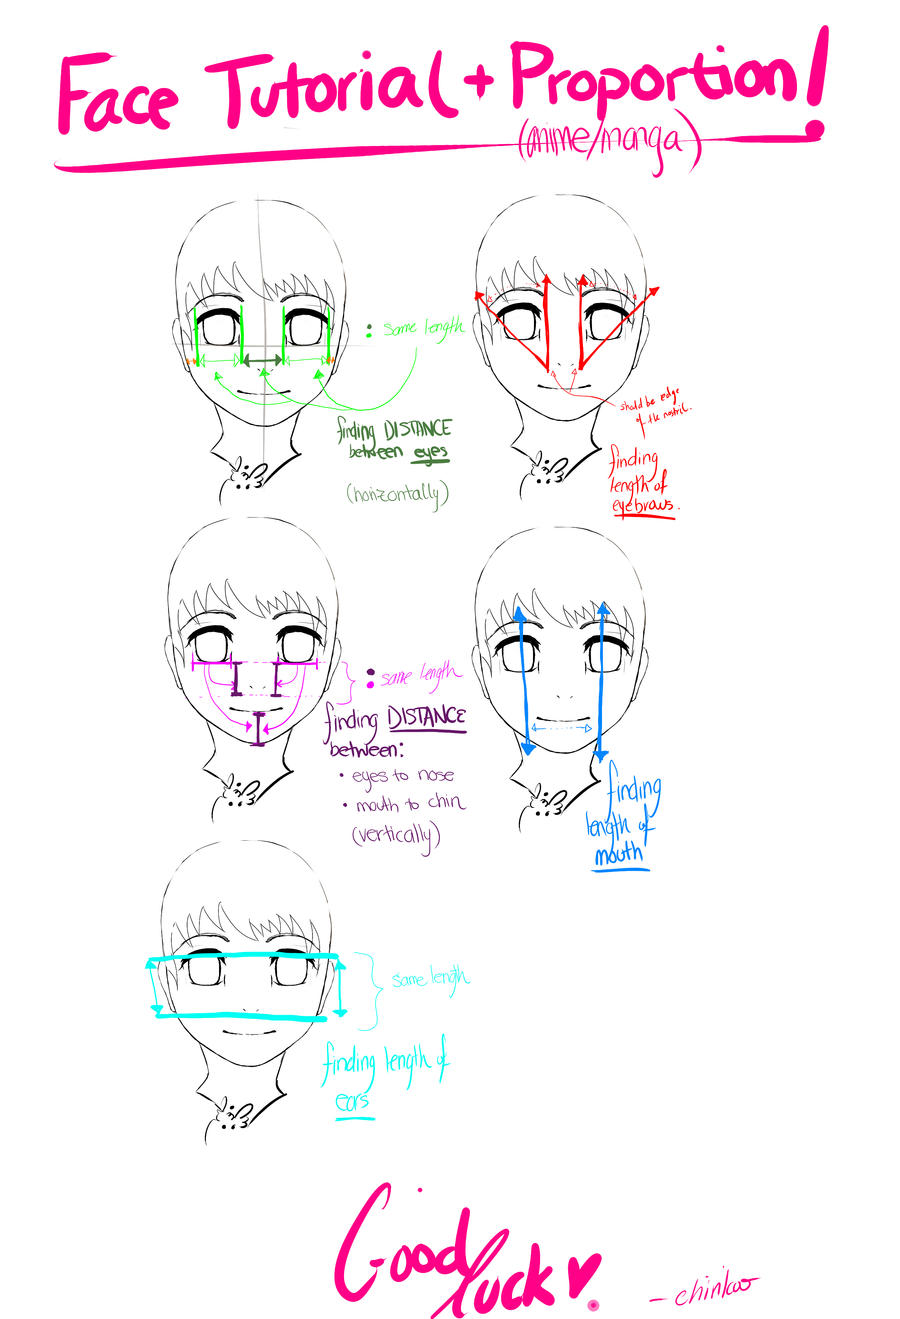 Anime Face Tutorial+Proportion by Chirikoo on DeviantArt